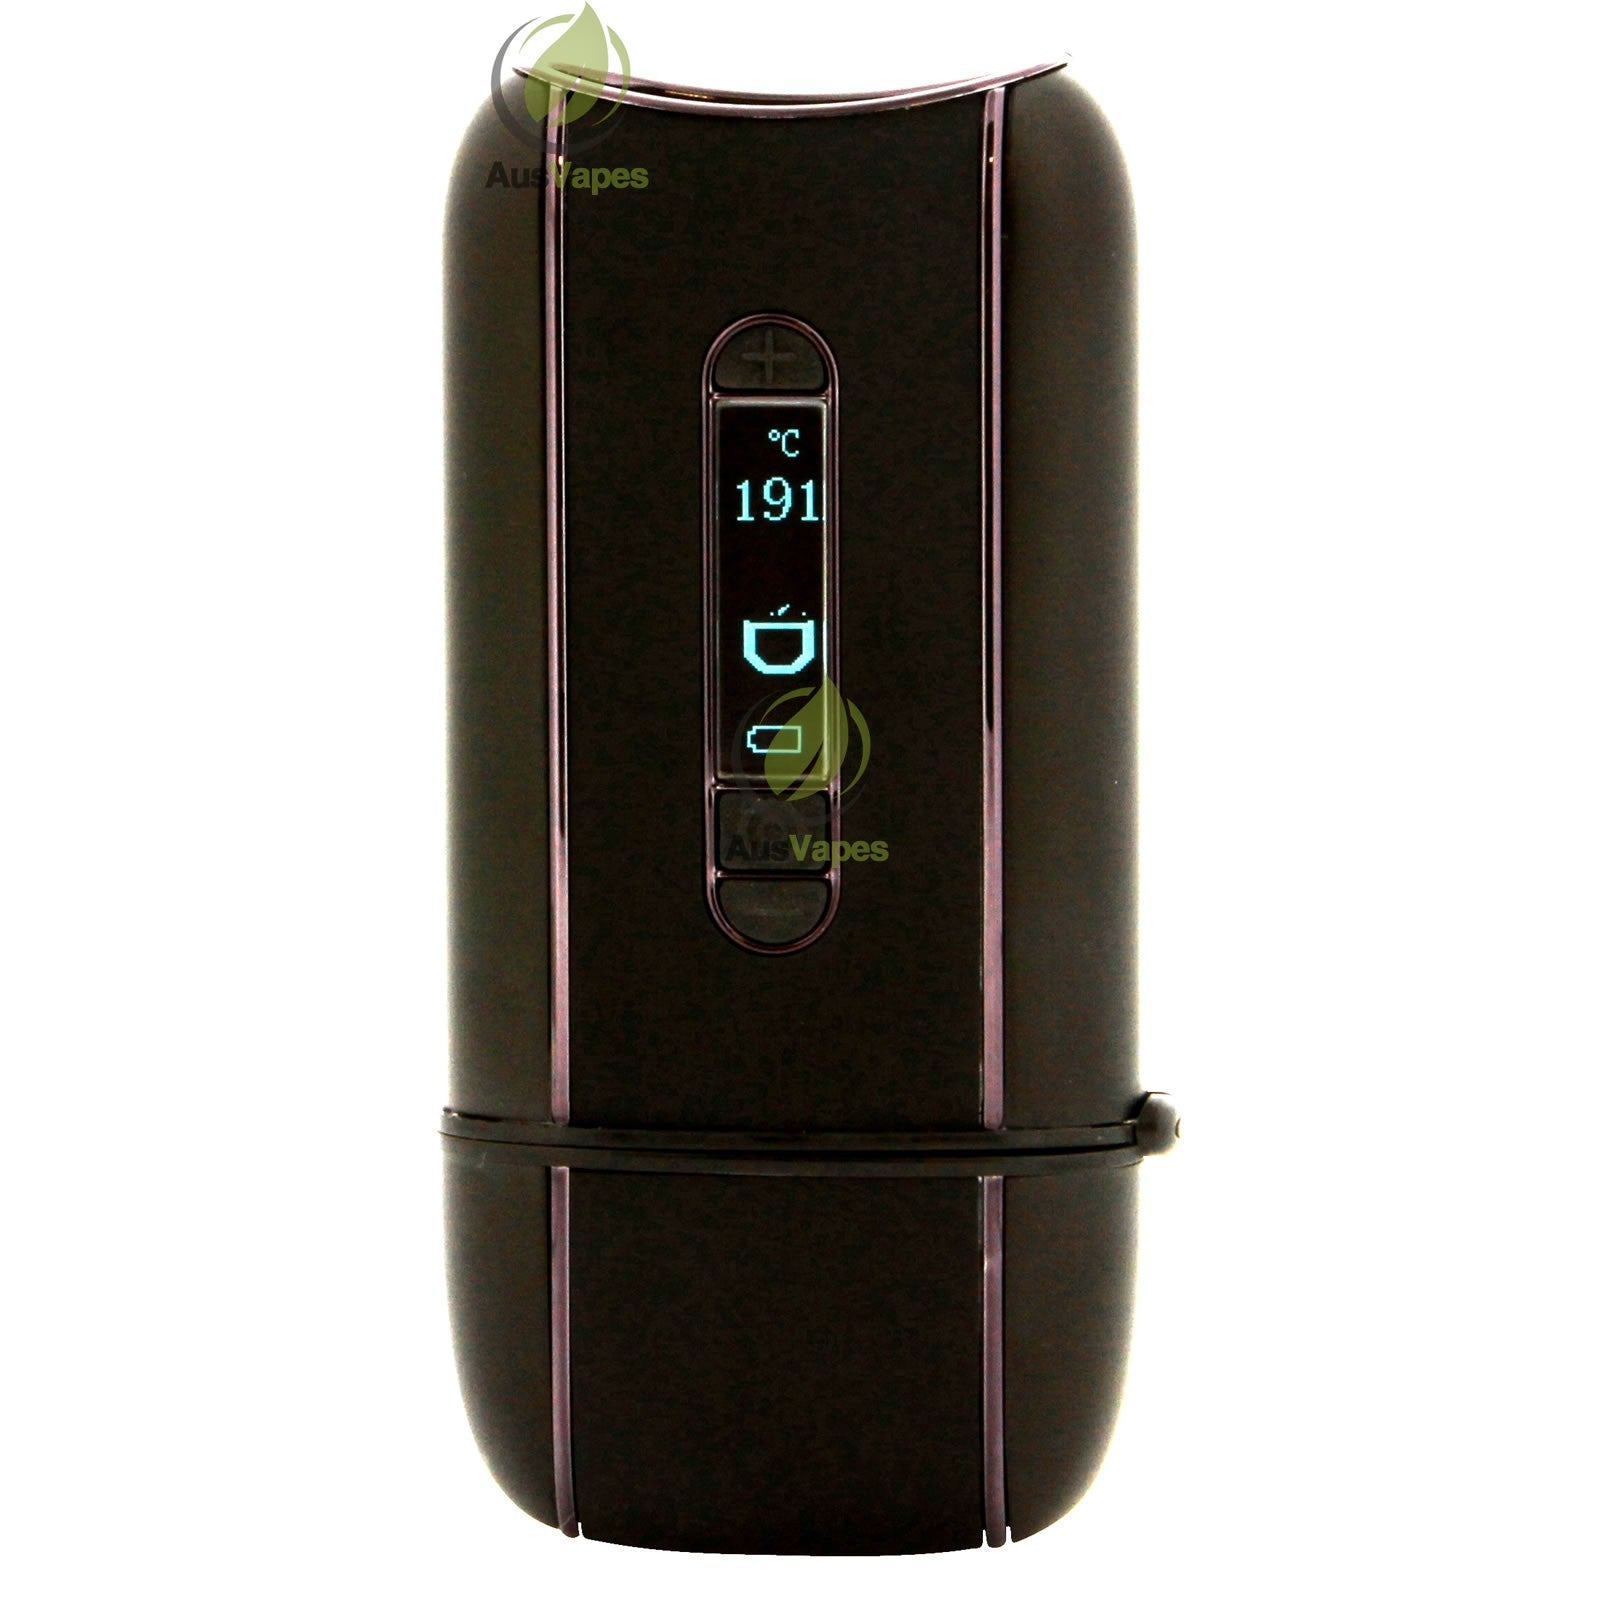 davinci ascent vaporizer black edition